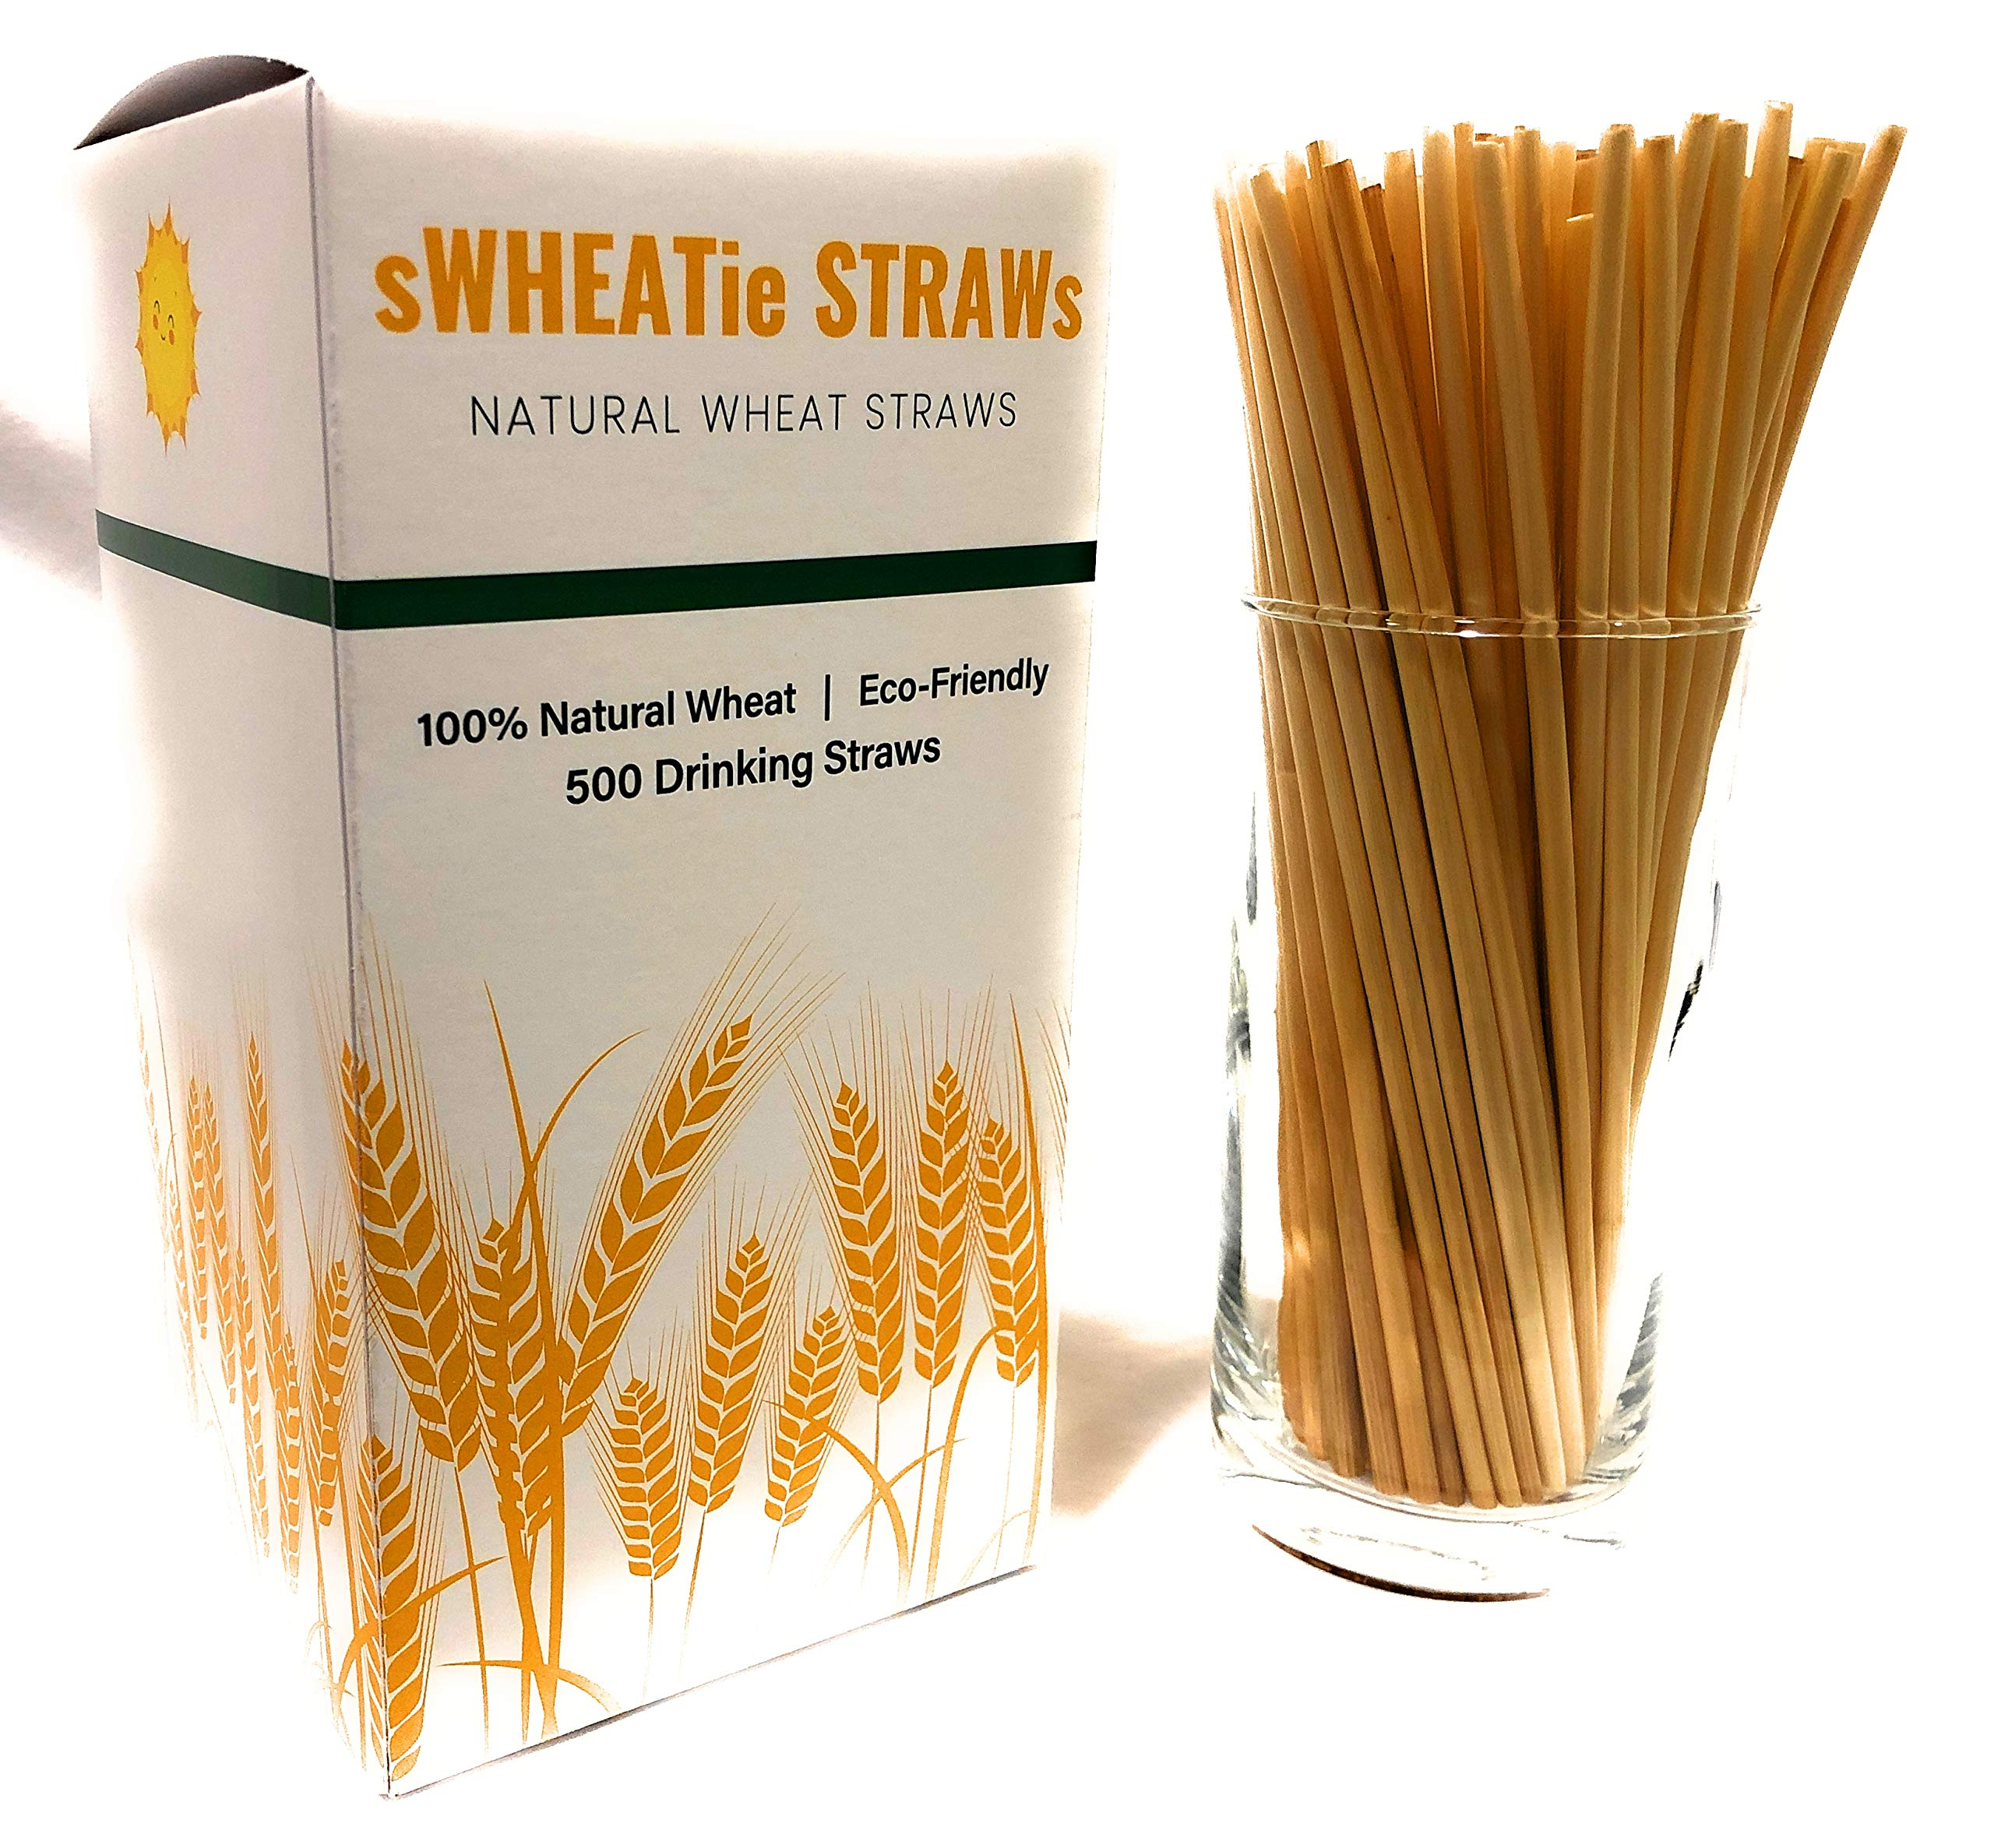 sWHEATie Straws |100% Natural Wheat Hay Straws for Drinking | Tall 500, Eco Friendly Biodegradable, Disposable, Safer than Reusable, for Home and Bars, Mom and Kid Approved!